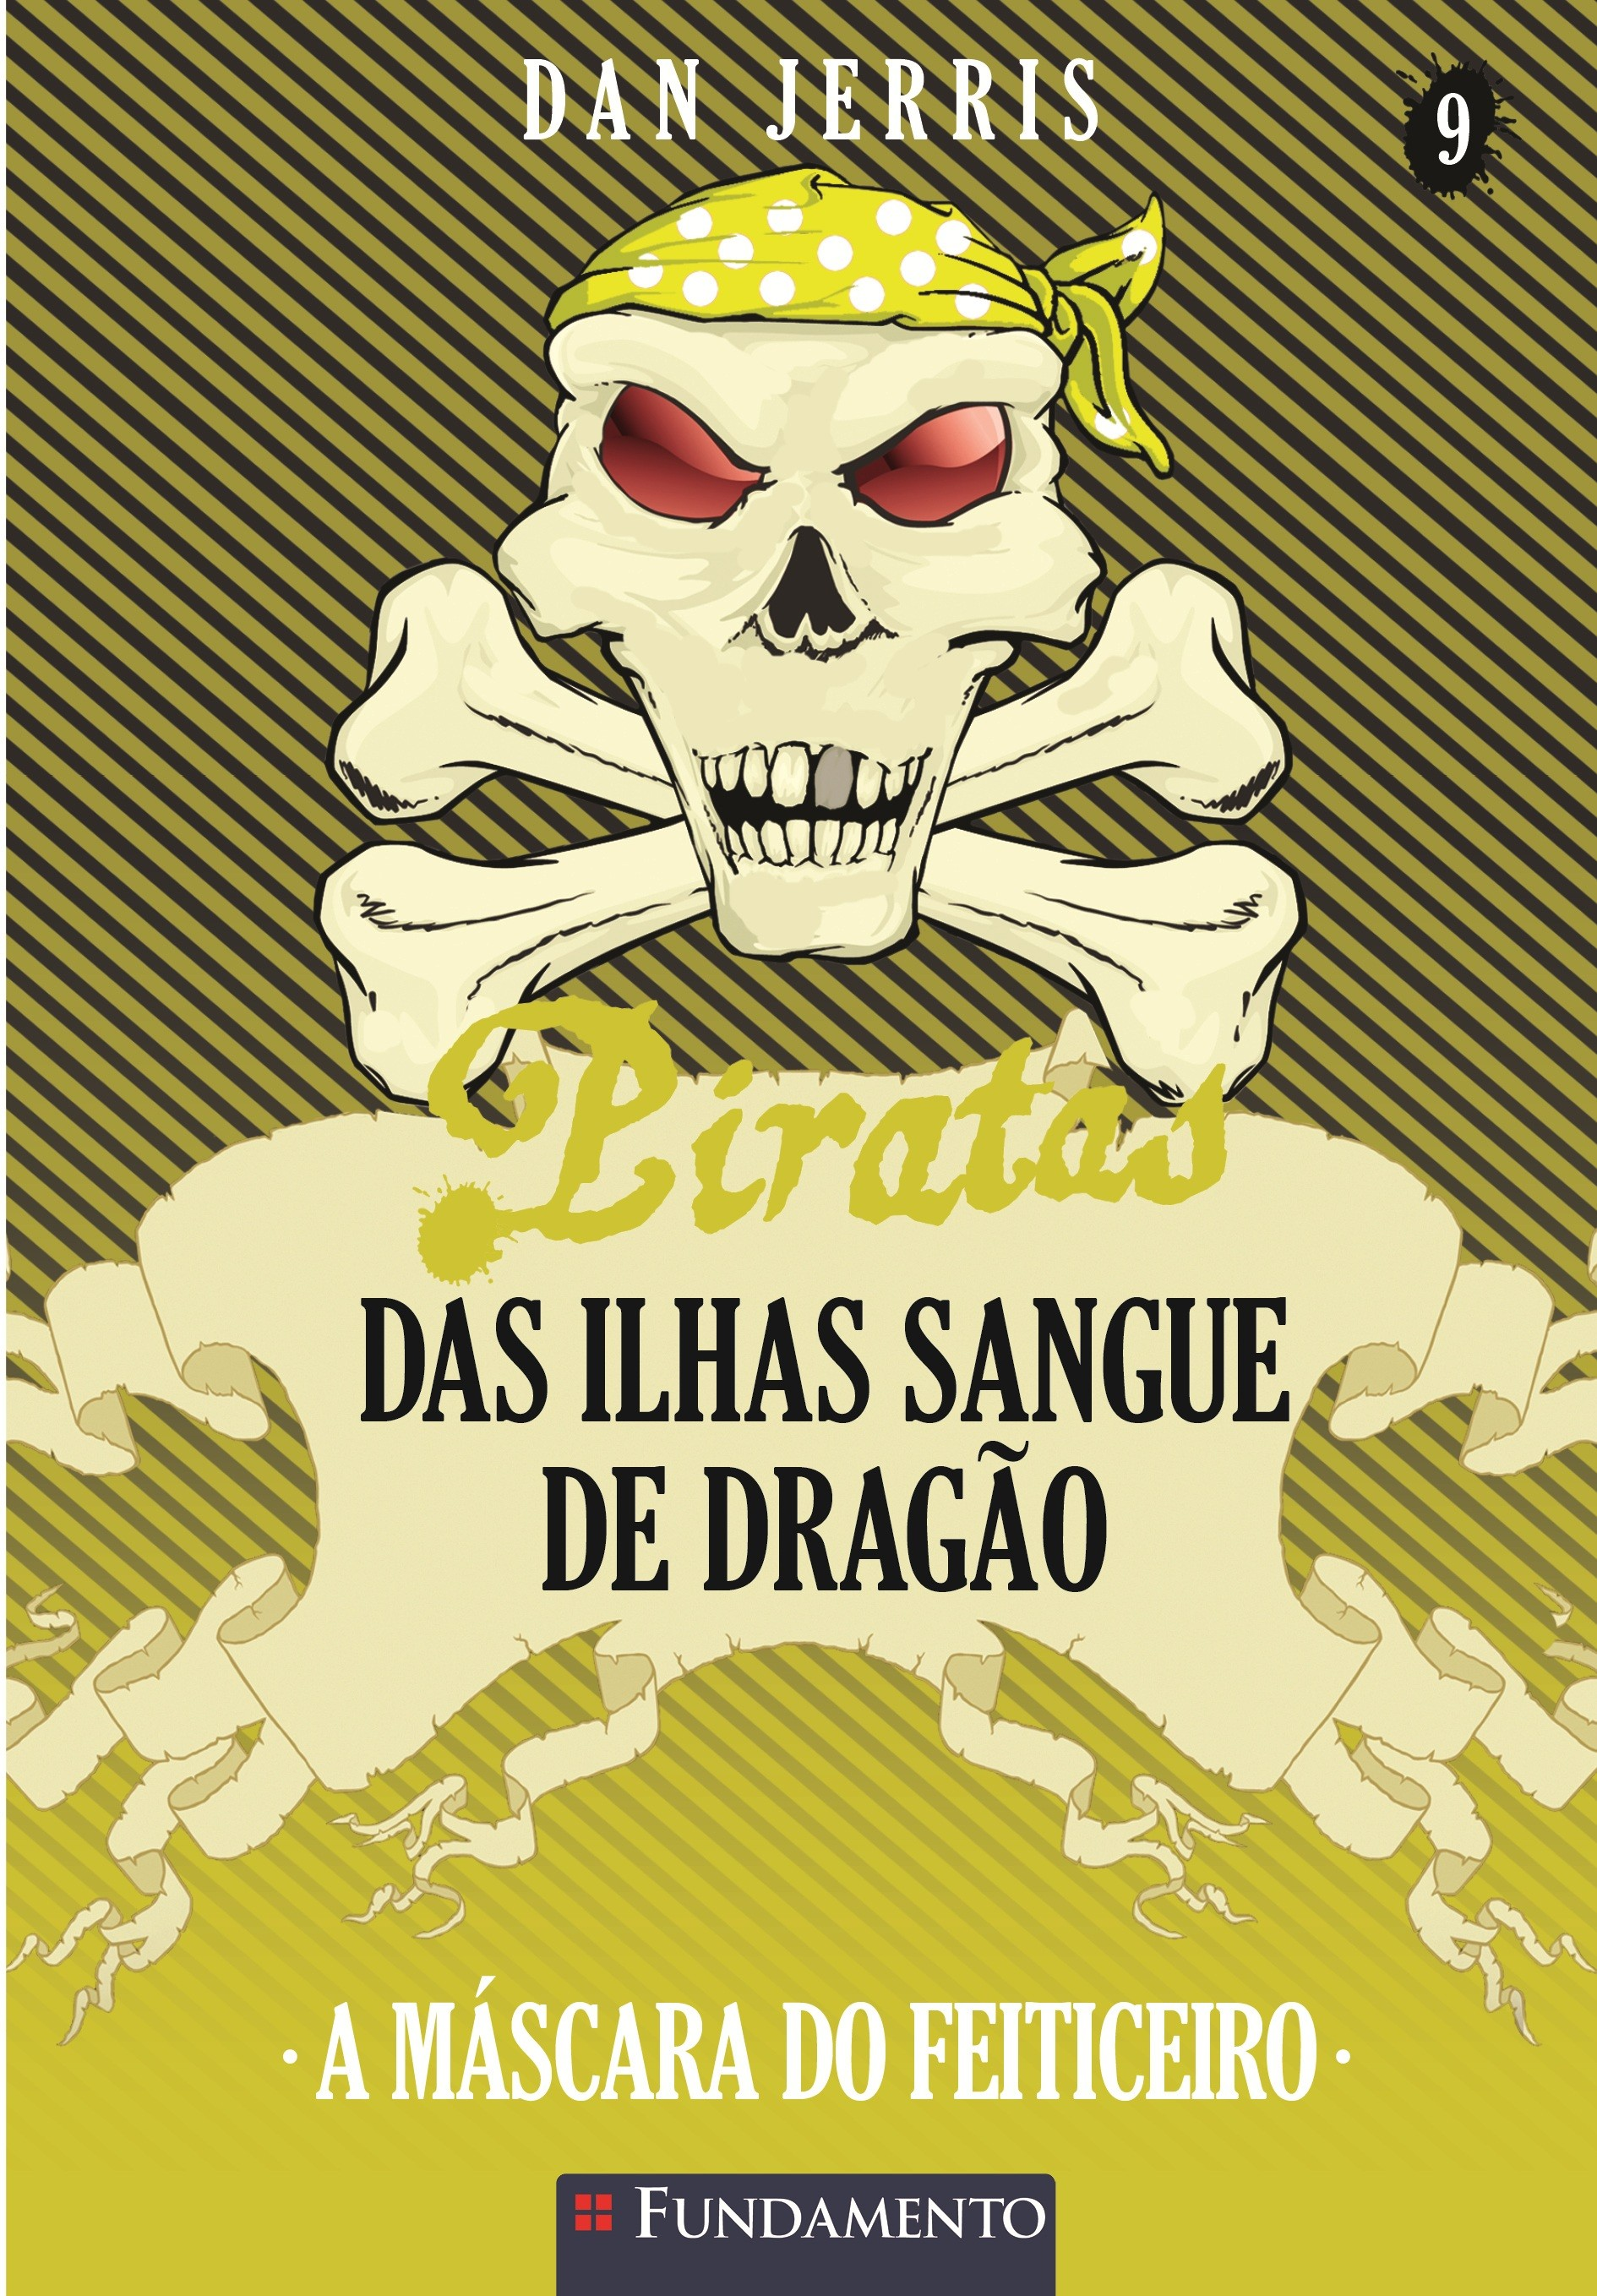 Piratas das Ilhas Sangue de Dragão 09 - A máscara do feiticeiro